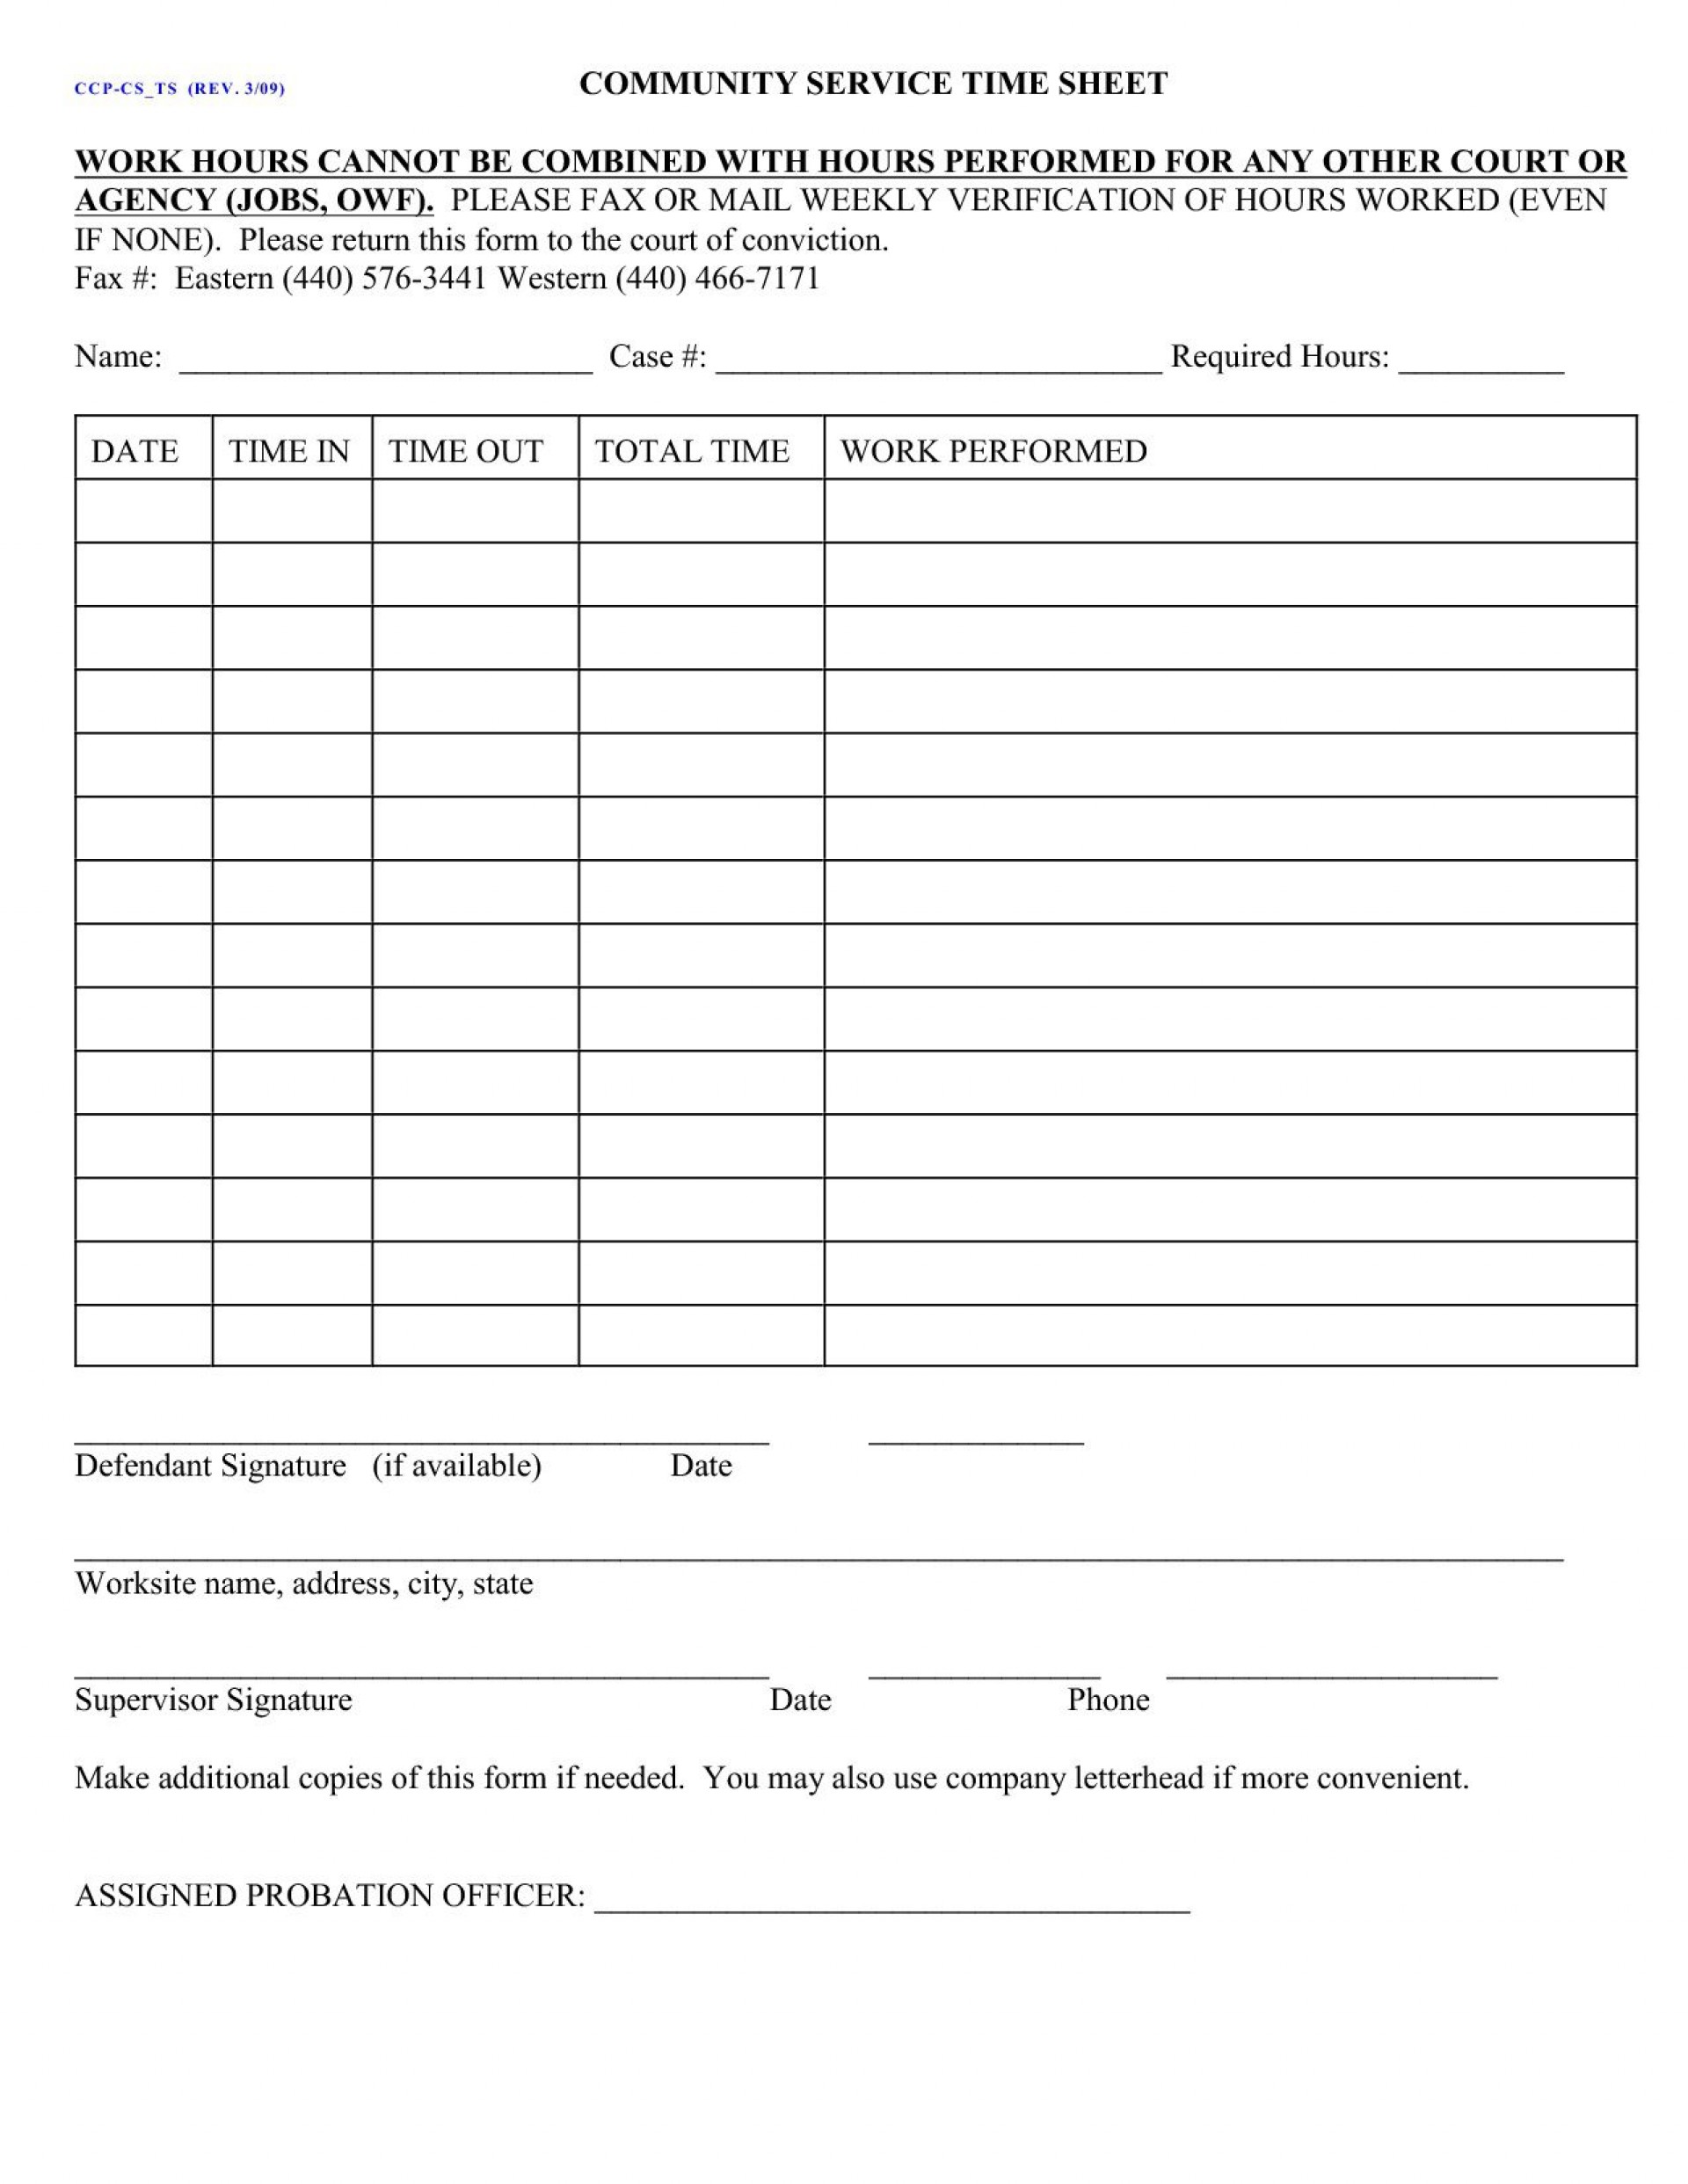 003 Fearsome Volunteer Hour Form Template Inspiration  Service Community Pdf1920